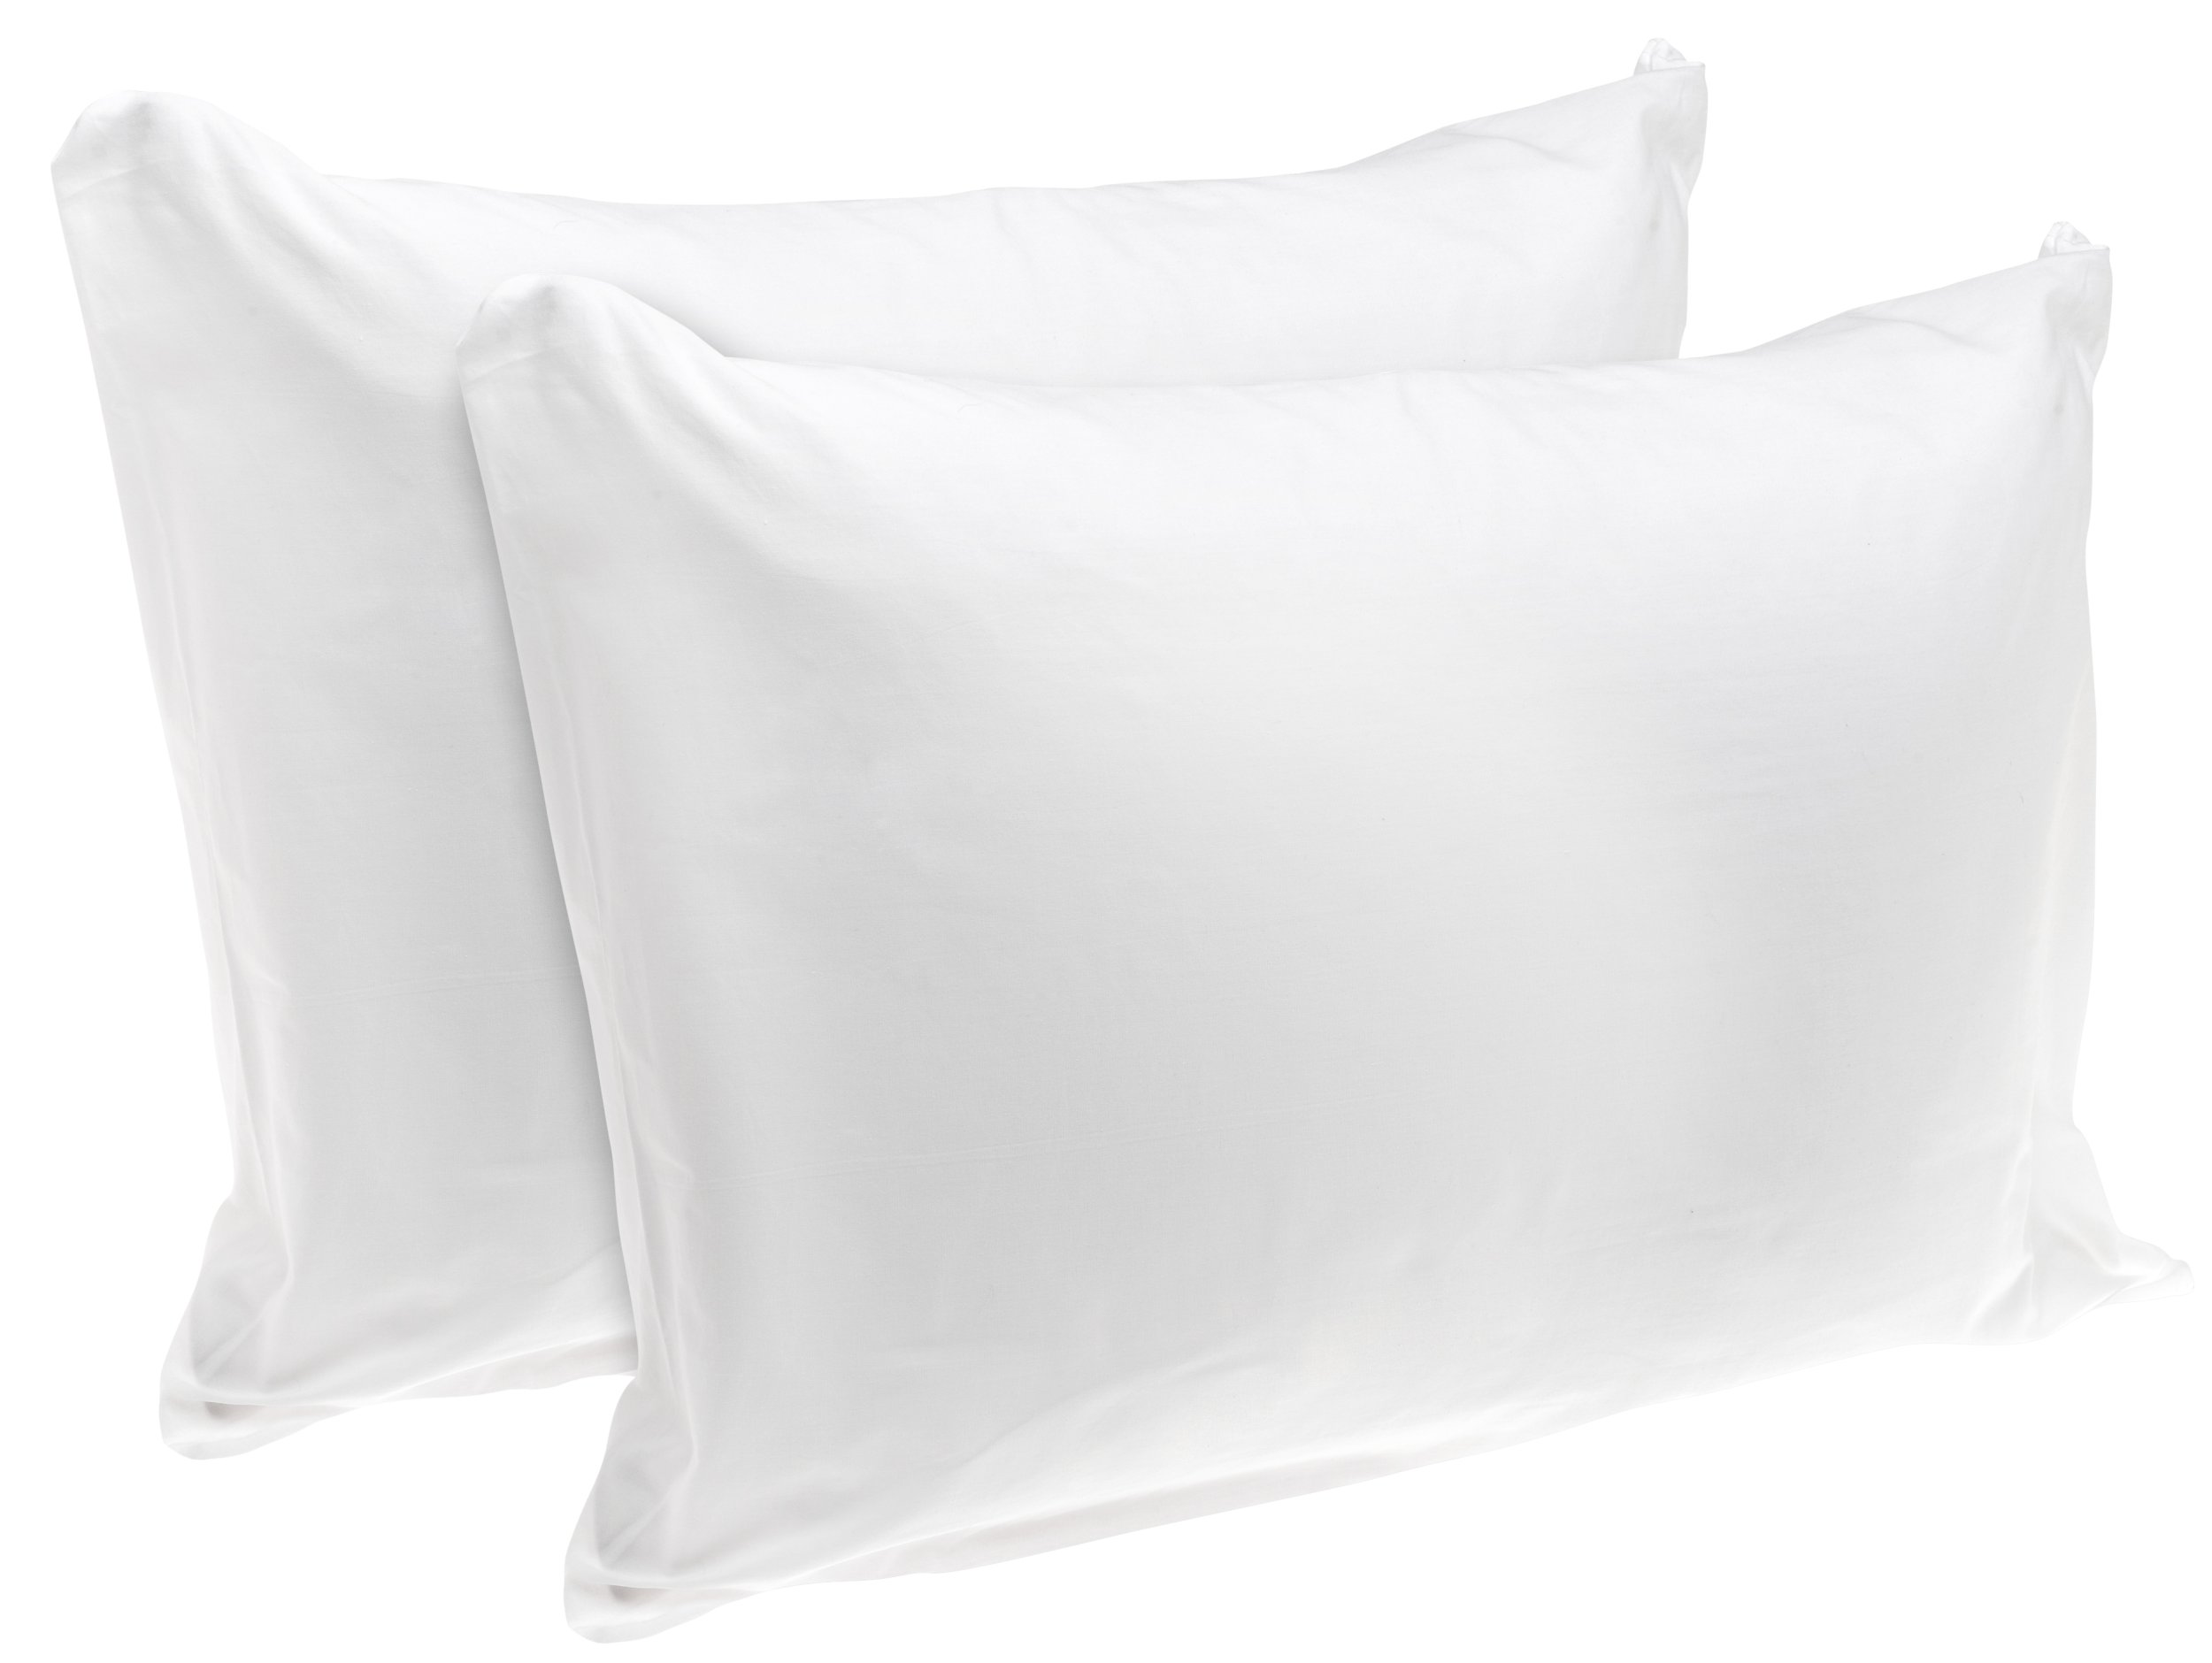 American Textile Rest Right 100% Cotton Zippered Pillow Protectors, Set of 2 - Zippered Pillow Covers Extend Pillow Life, Keeping Pillows Fresh and Clean, Standard/Queen Sized